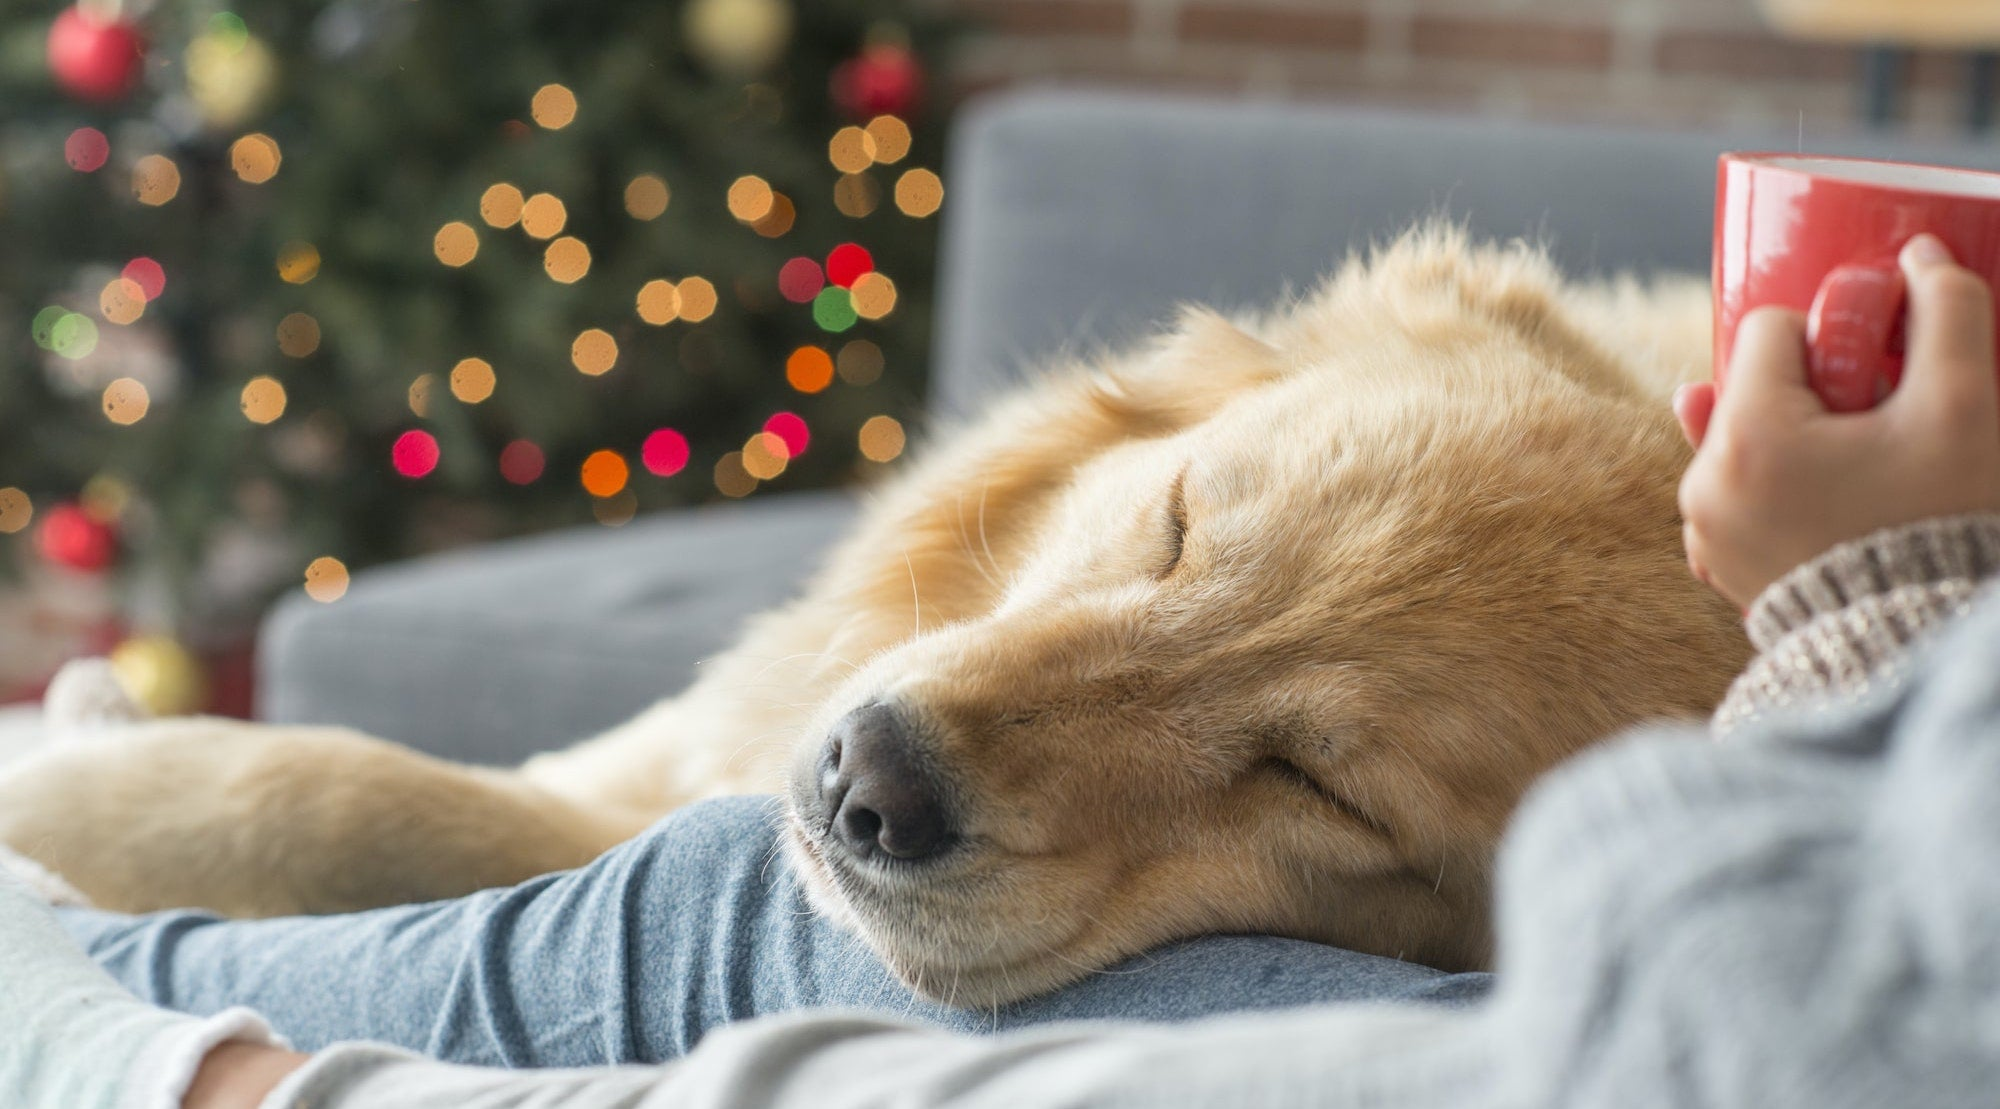 sleeping dog snuggled on the sofa with humans in front of a Christmas tree